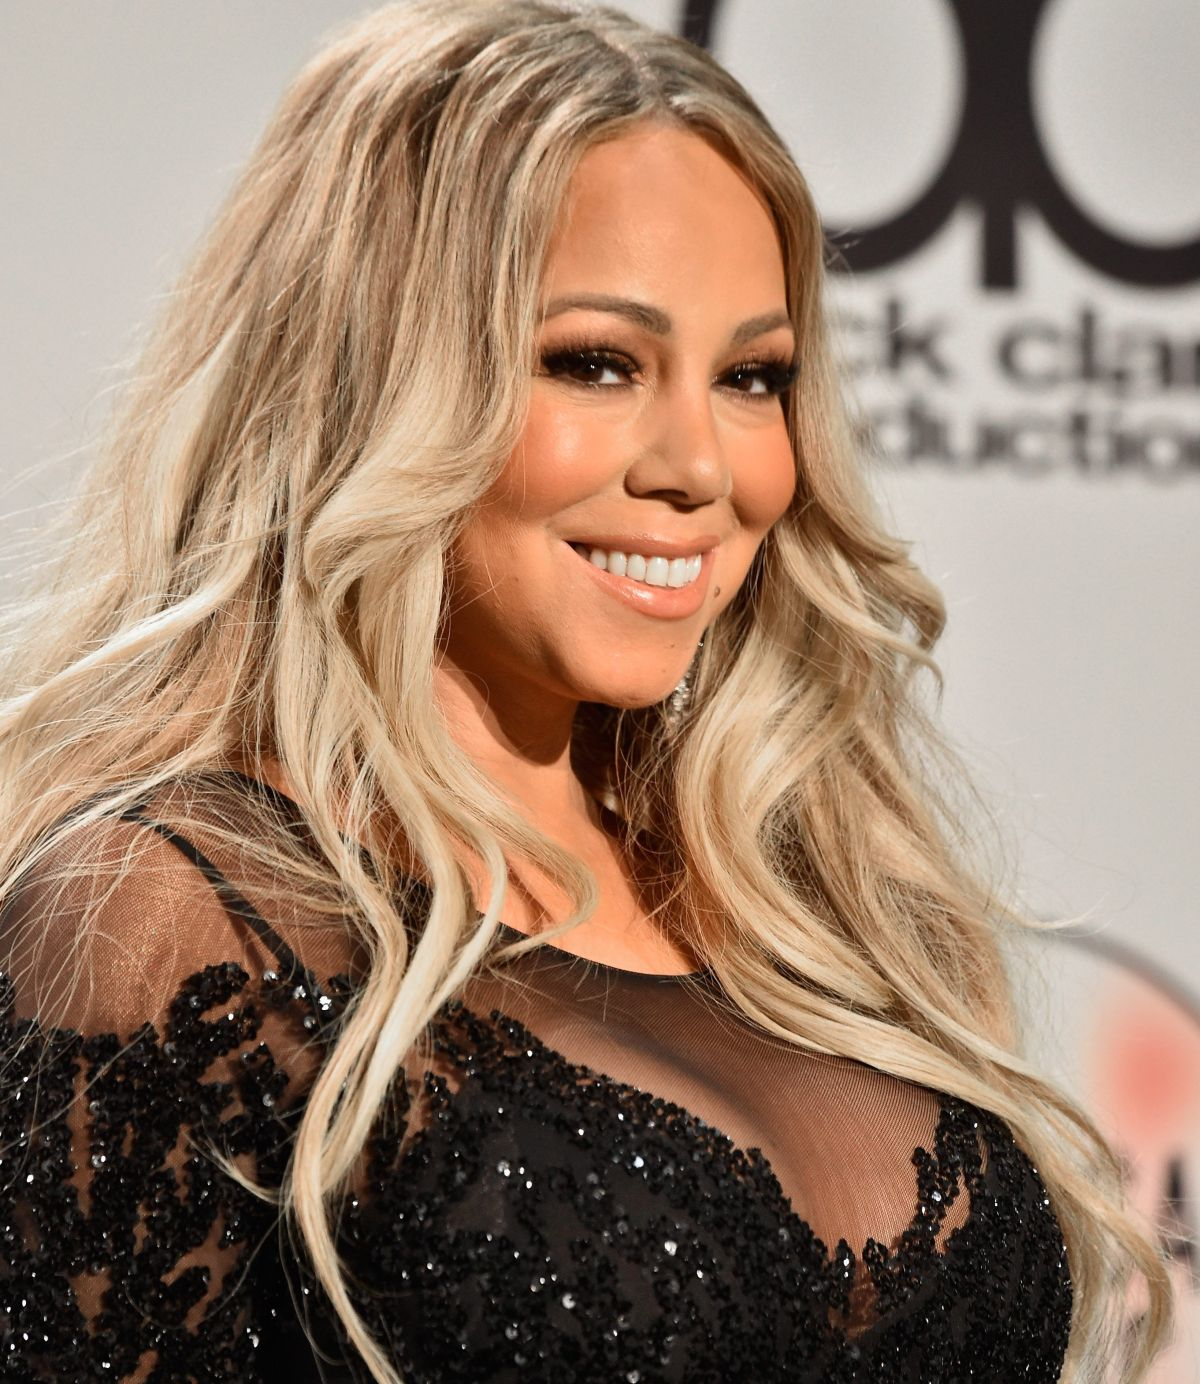 Mariah Carey spoke about the problems of being biracial in the music industry